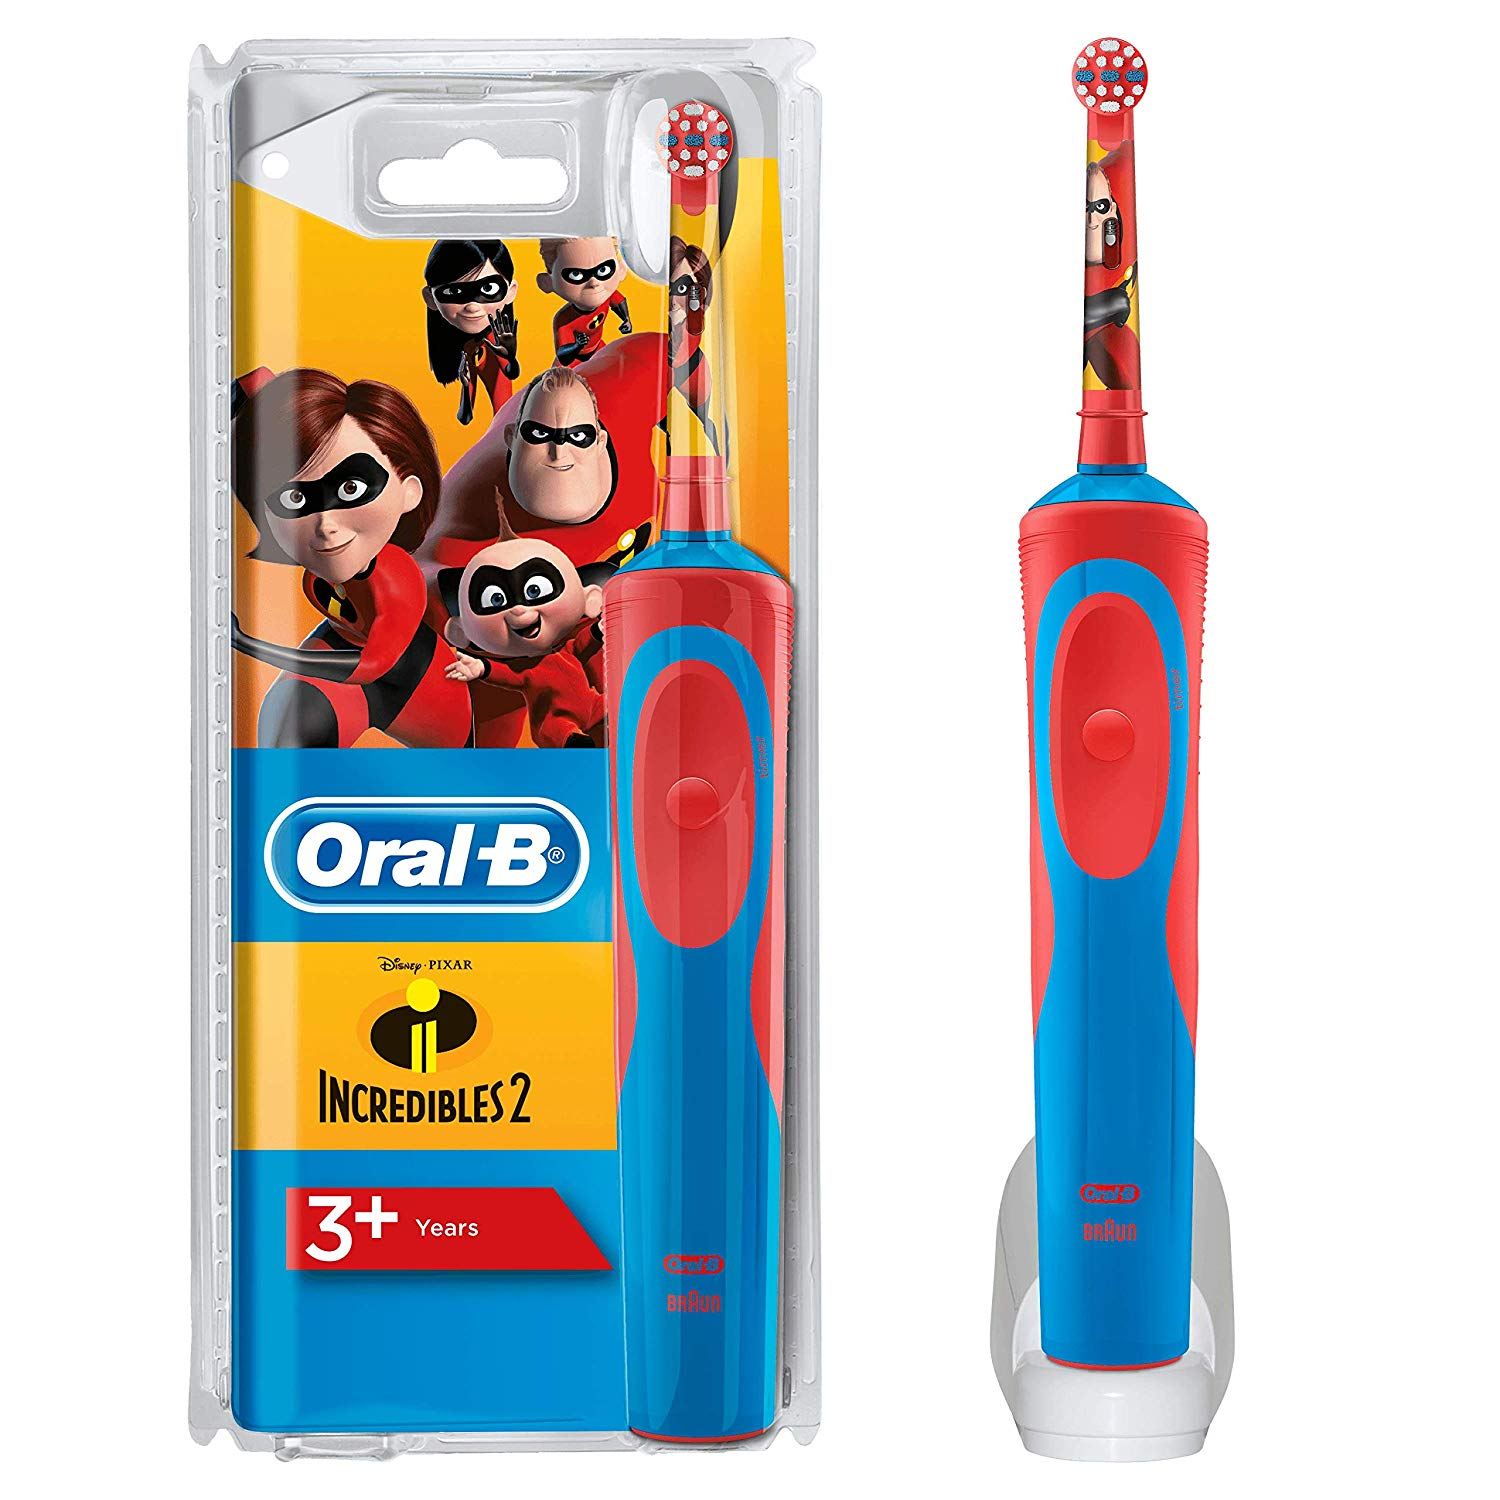 Oral-B Electric Rechargeable Toothbrush for Kids